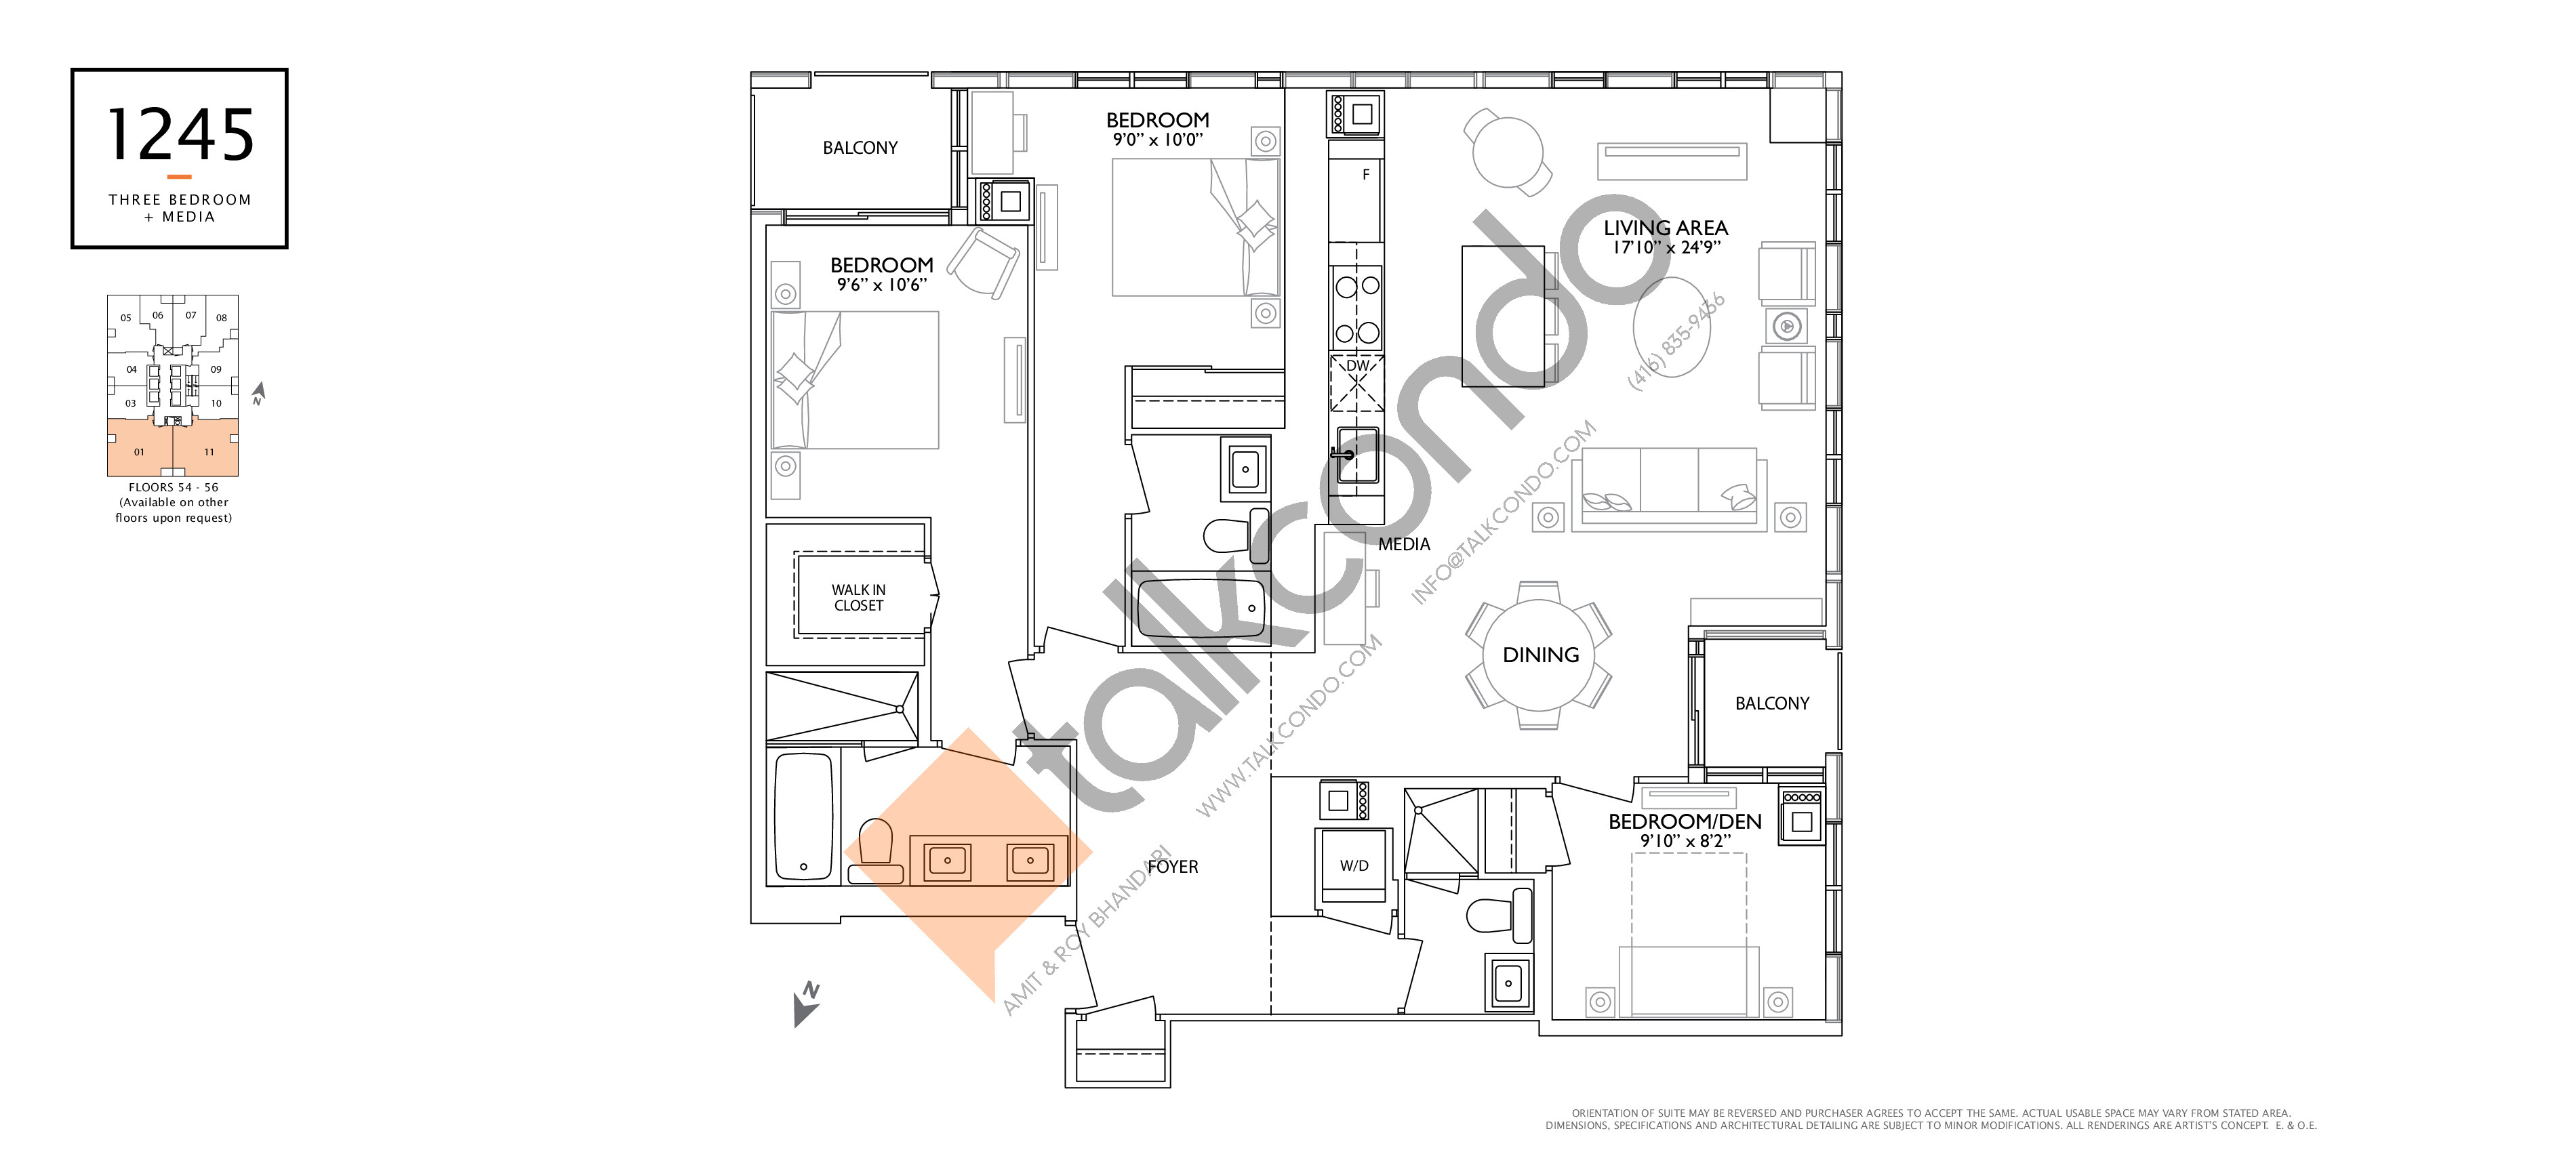 1245 Floor Plan at 1 Yorkville Condos - 1245 sq.ft